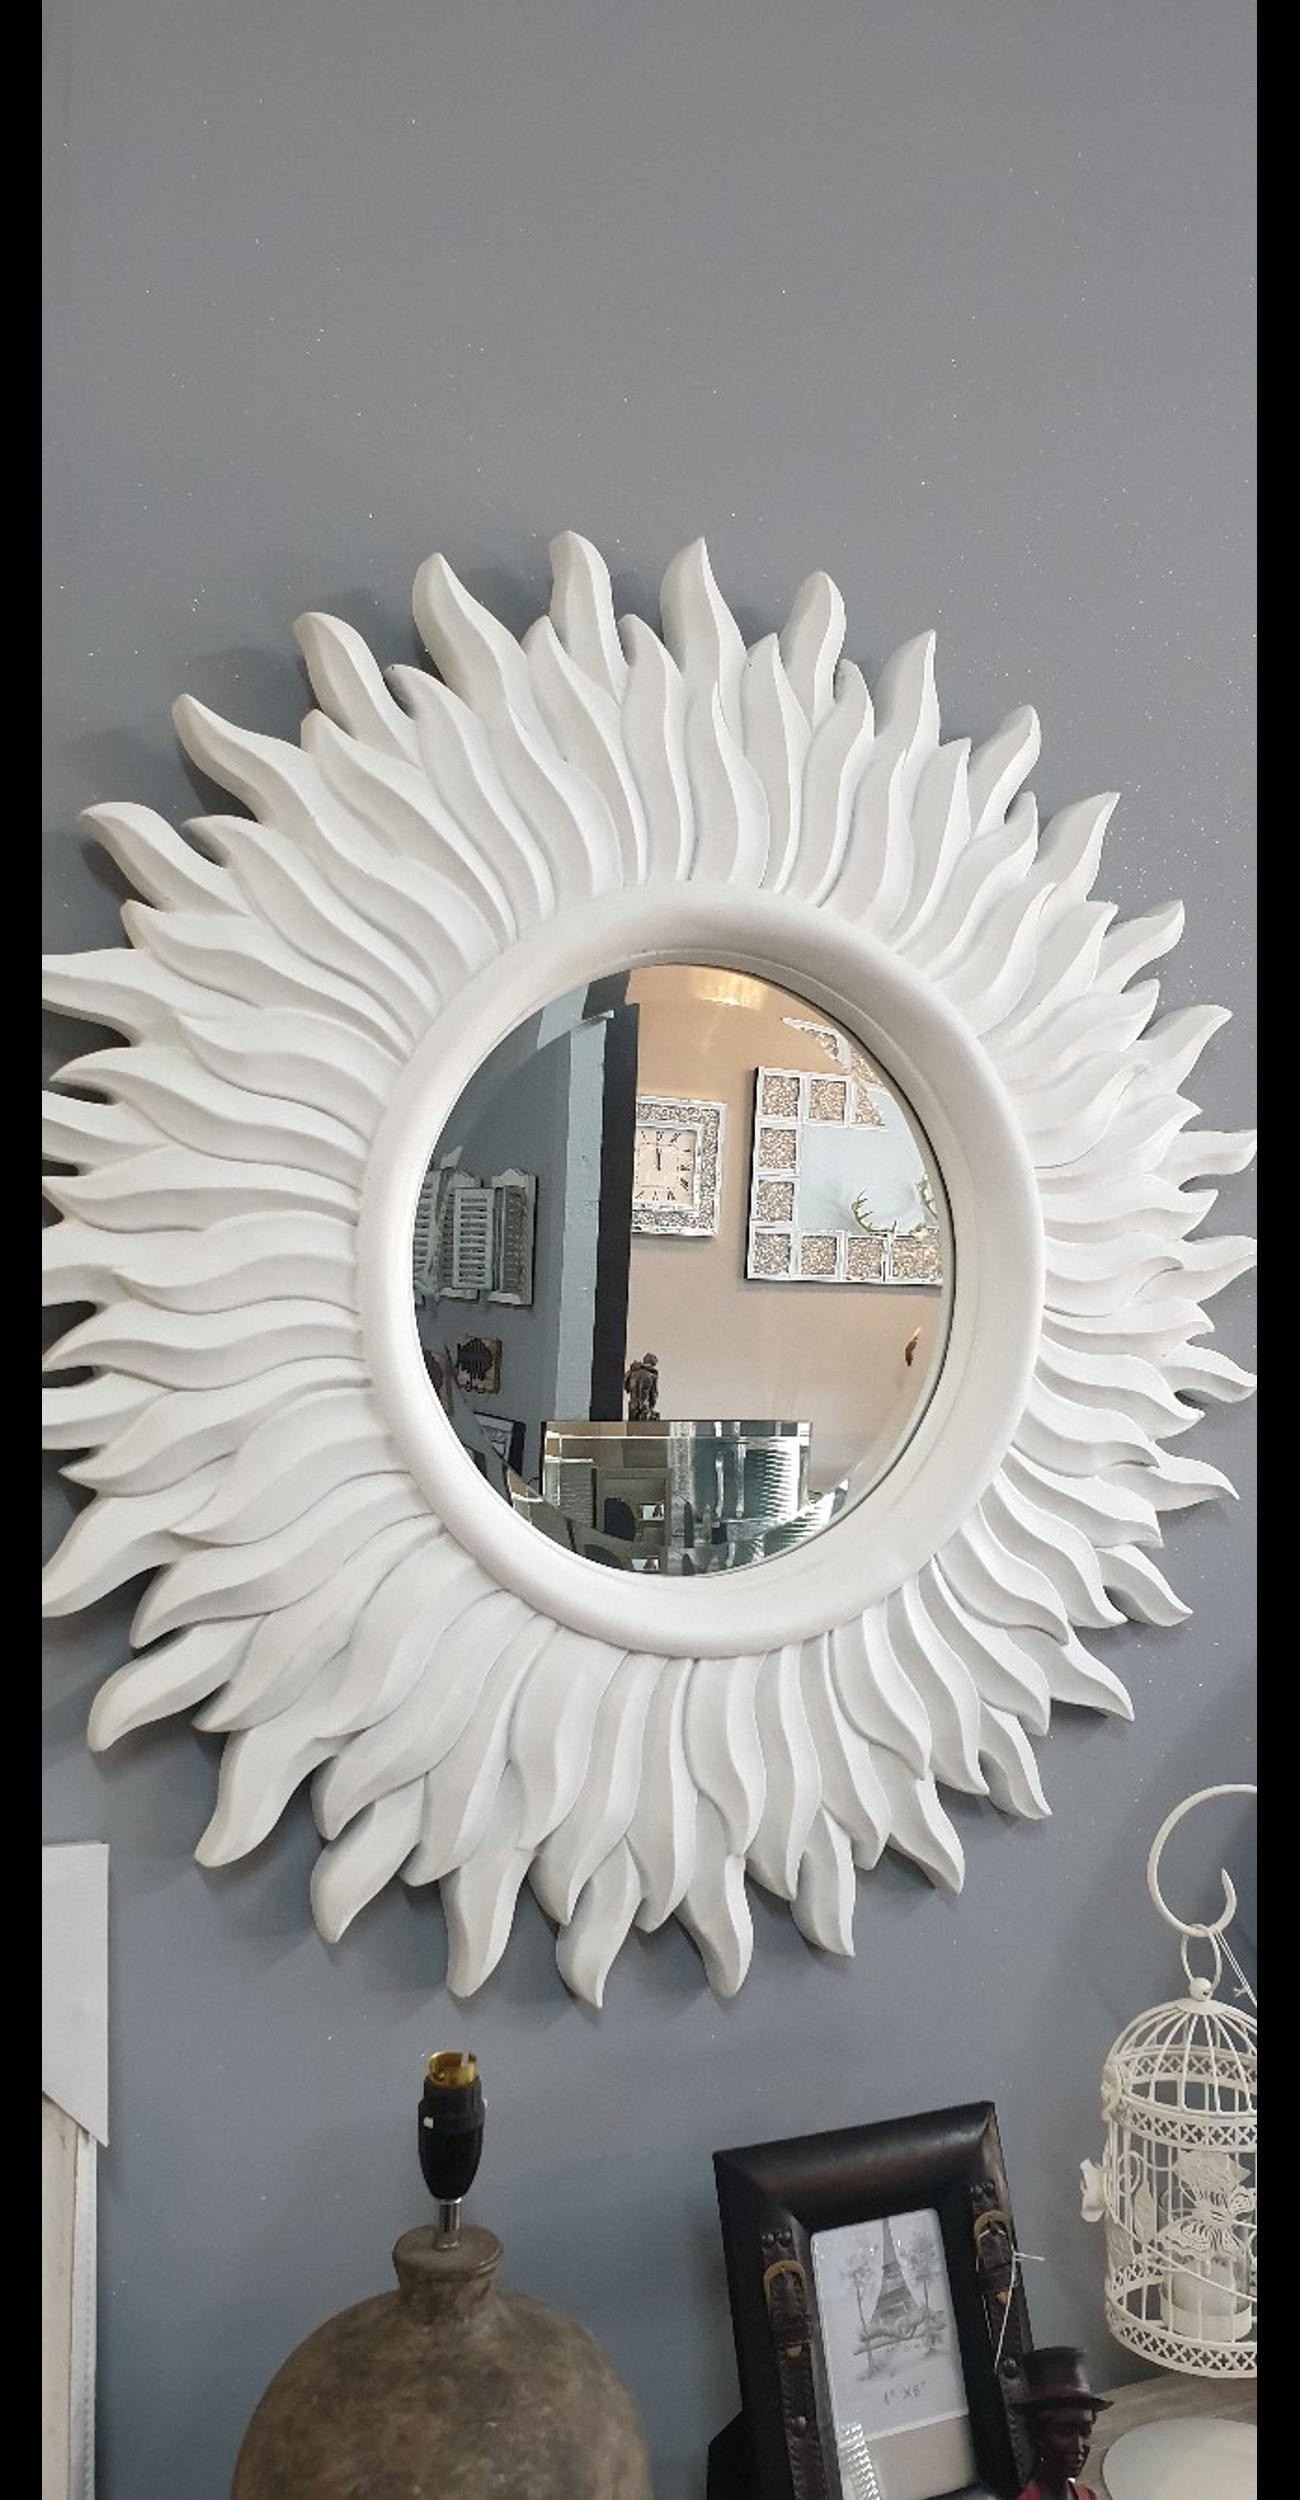 Large White Sunburst Round Wall Mirror In L30 Sefton For 45 00 For Sale Shpock